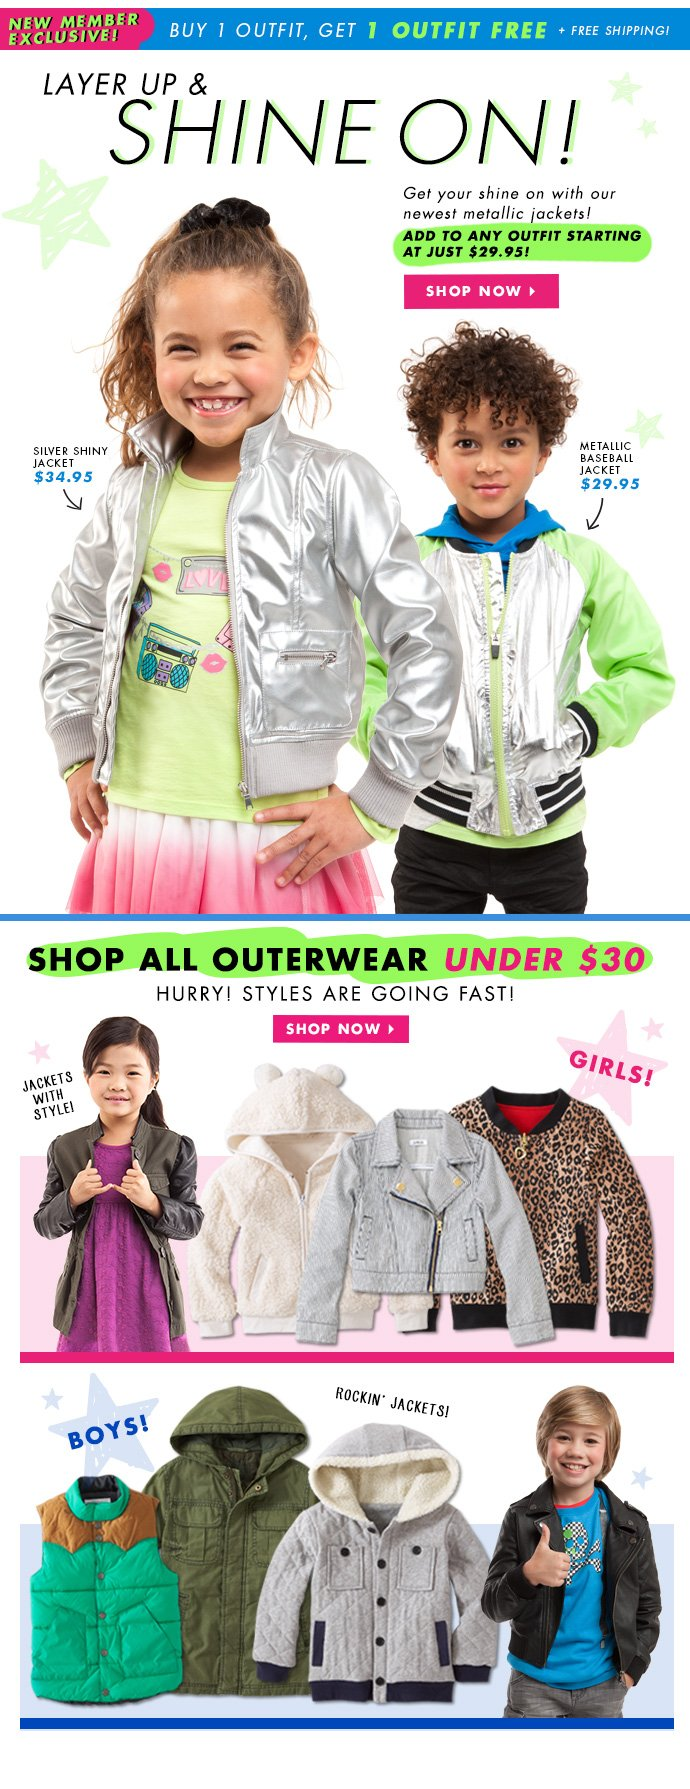 Layer Up & Shine On Starting At $29.95!